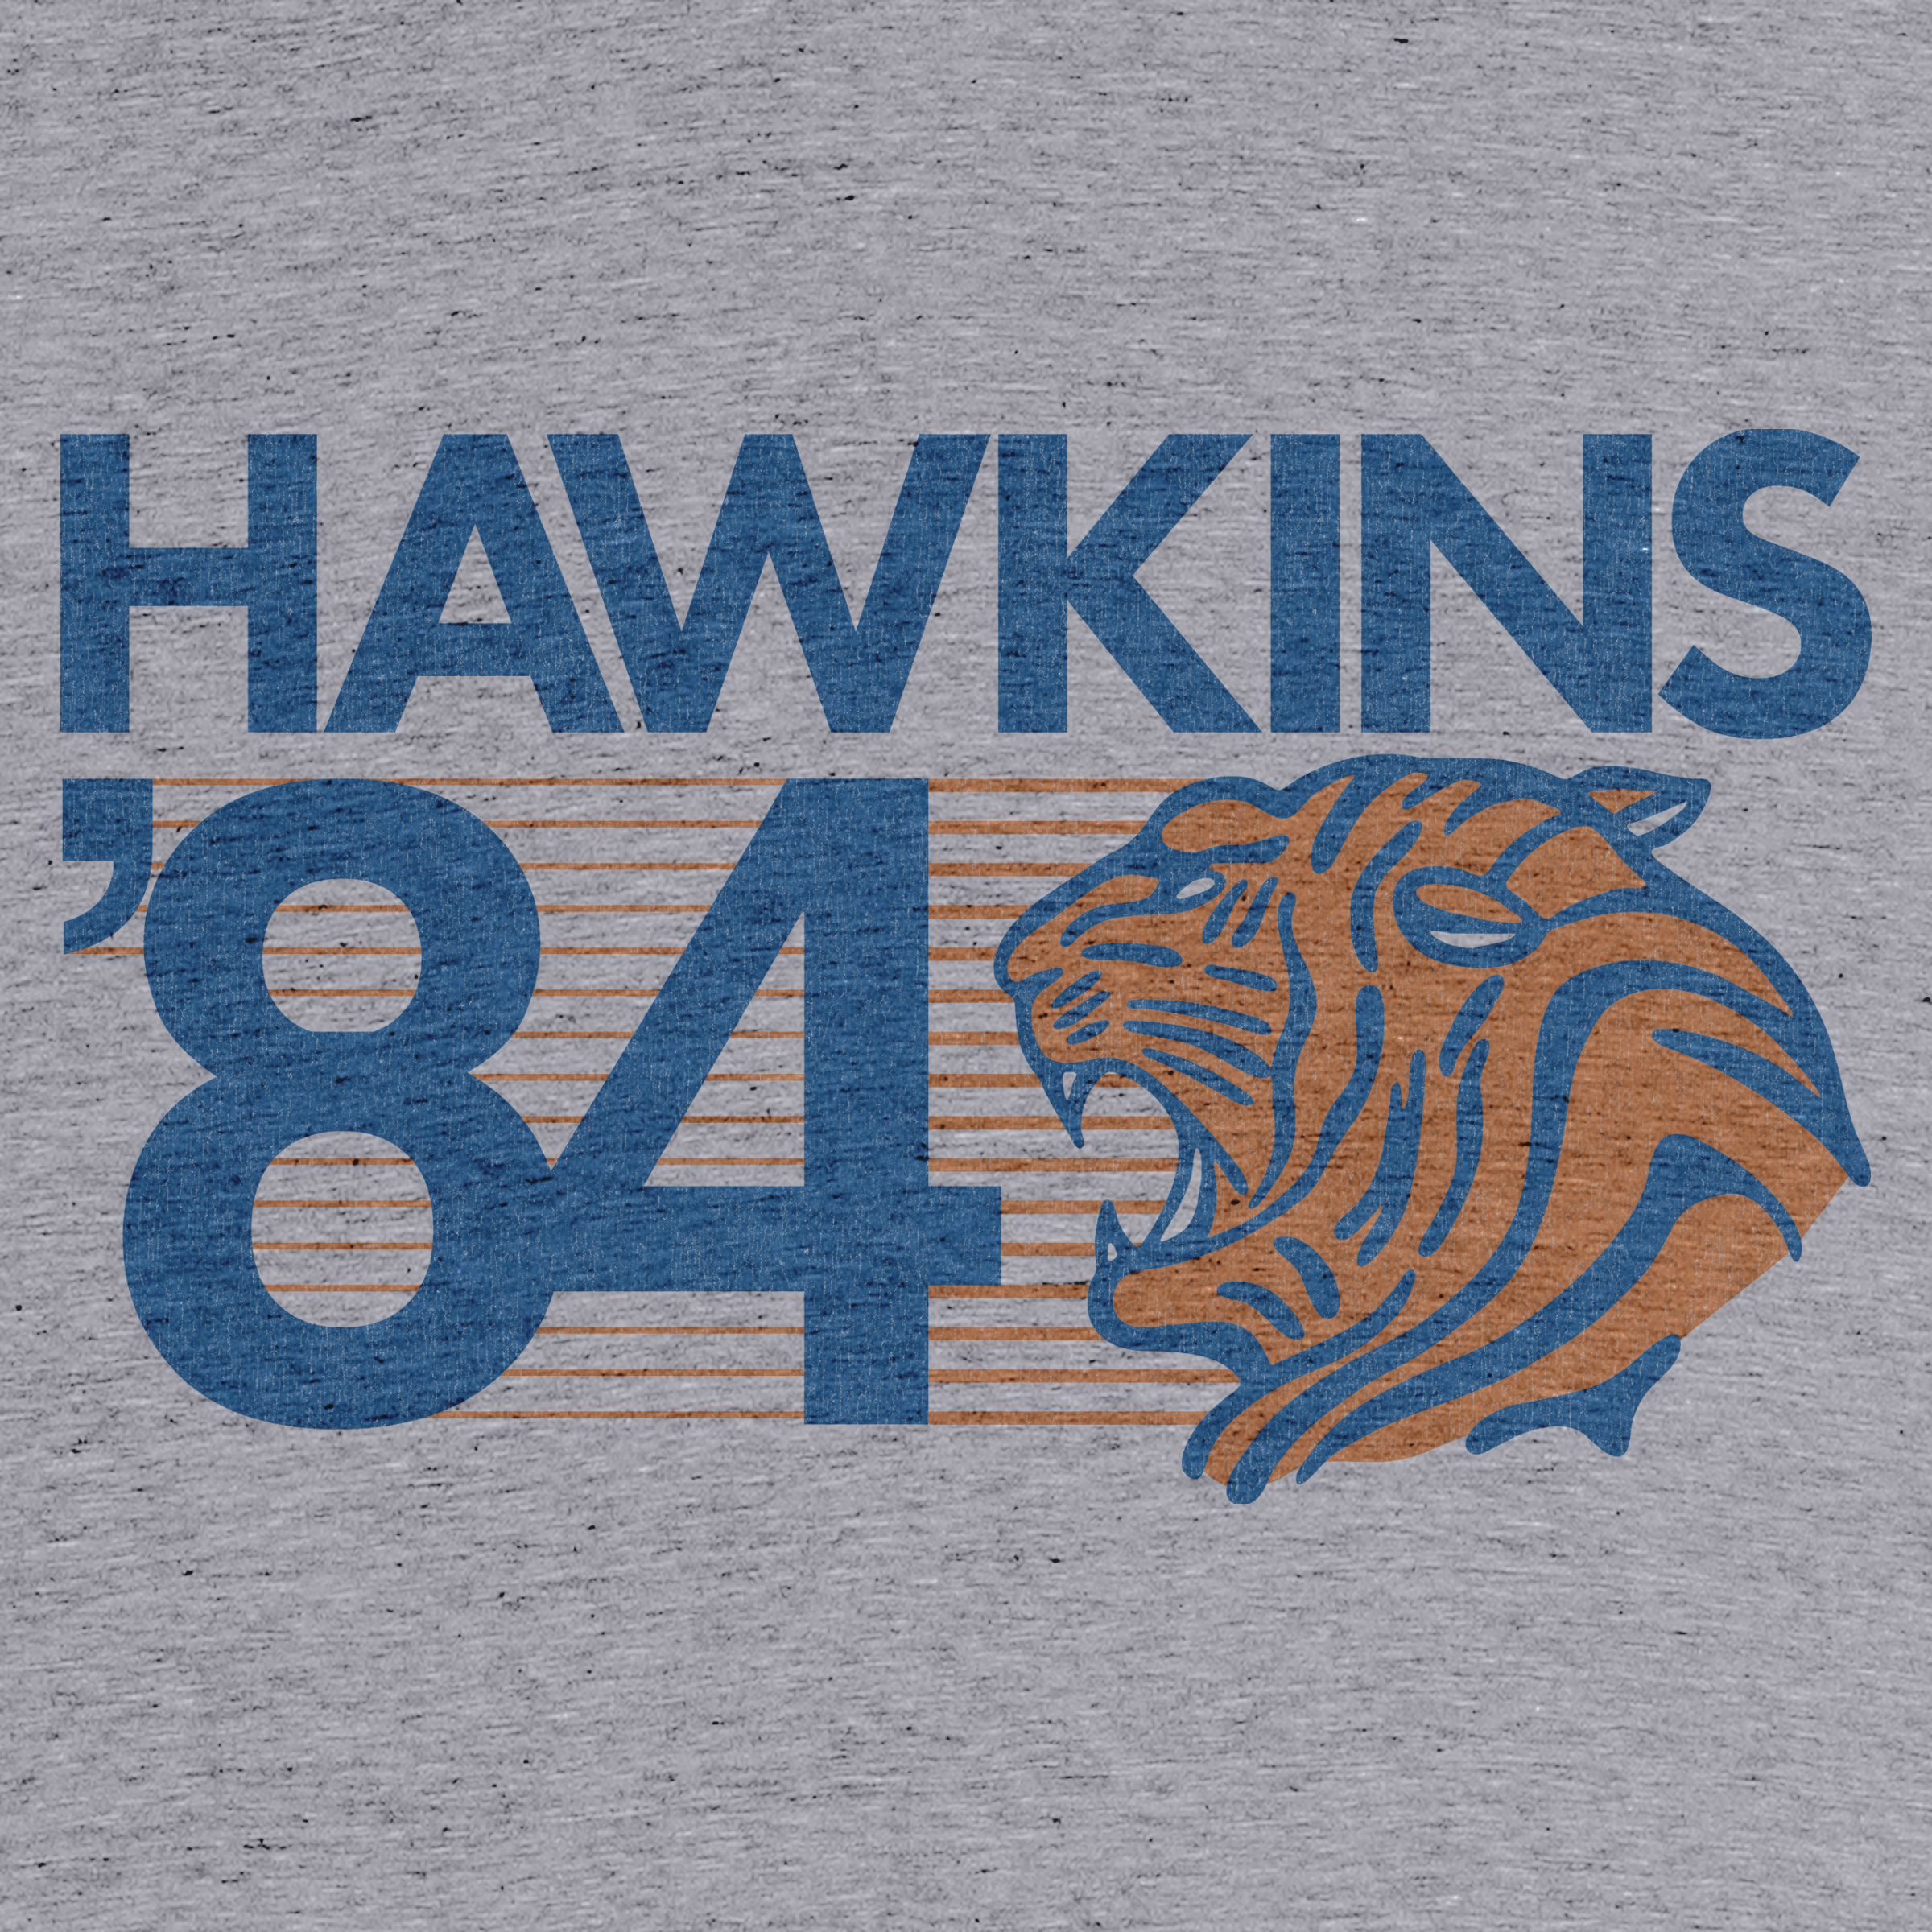 Hawkins High '84: Stranger Things